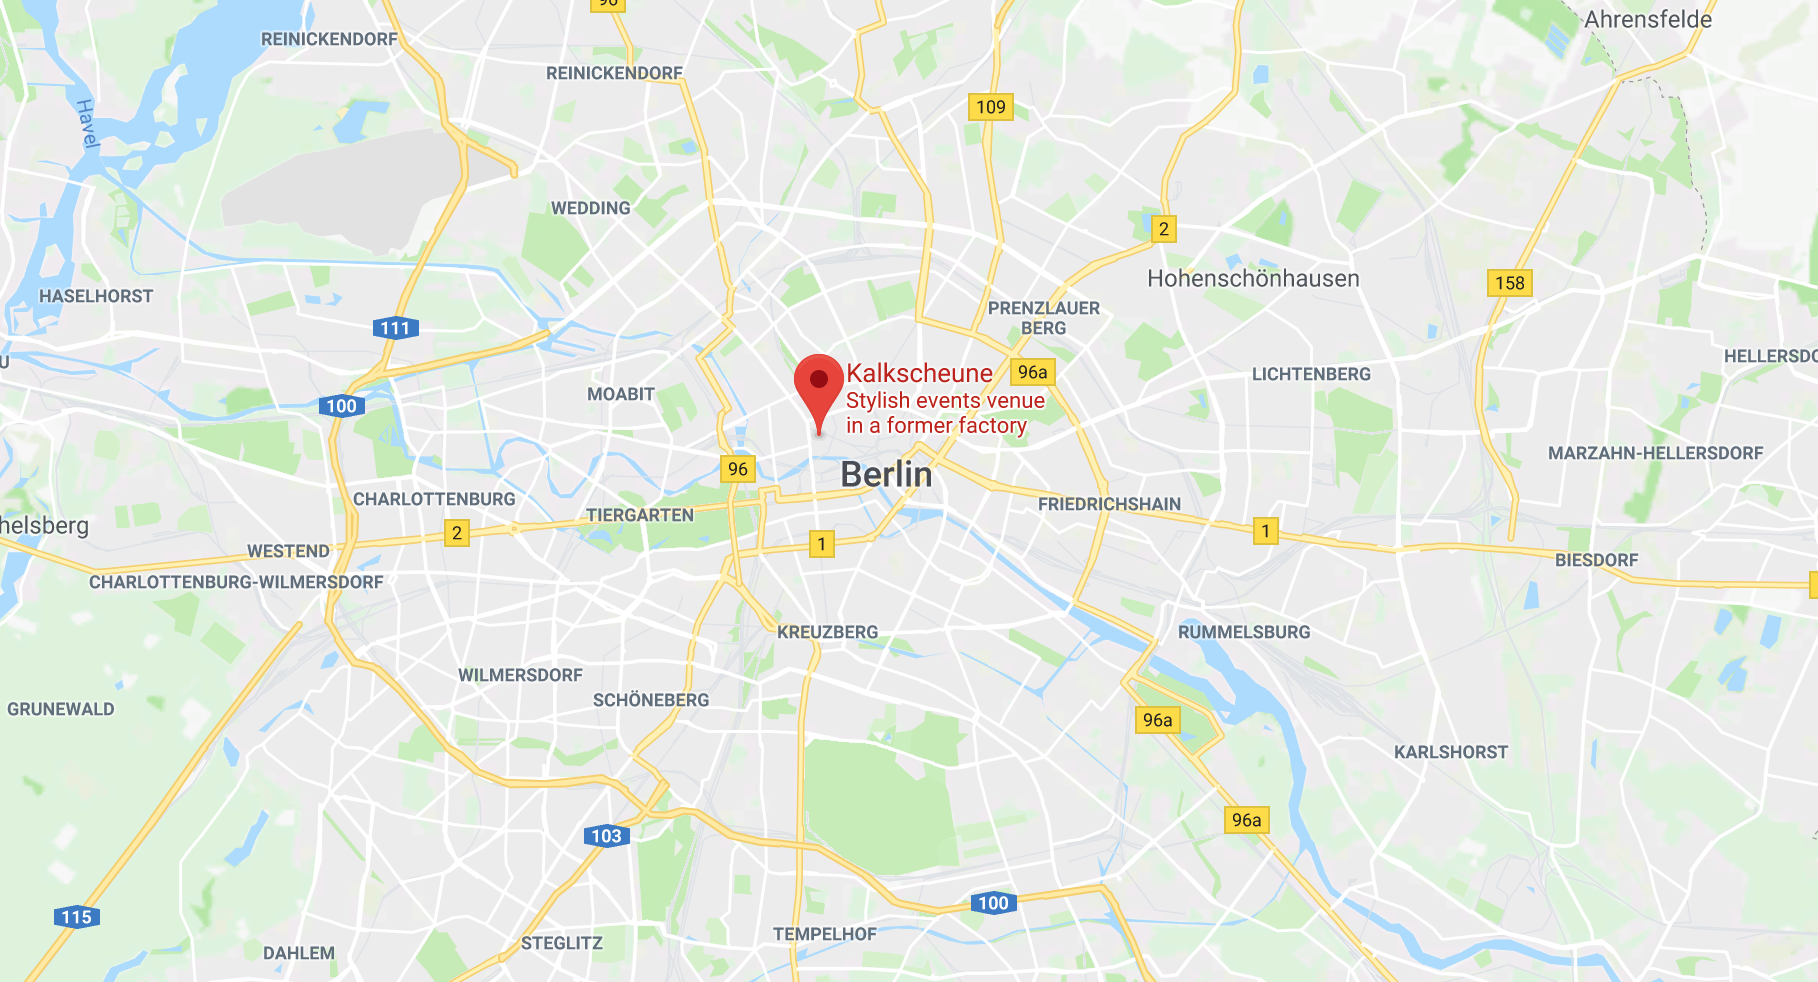 Screenshot of Google Maps showing the location of Kalkscheune